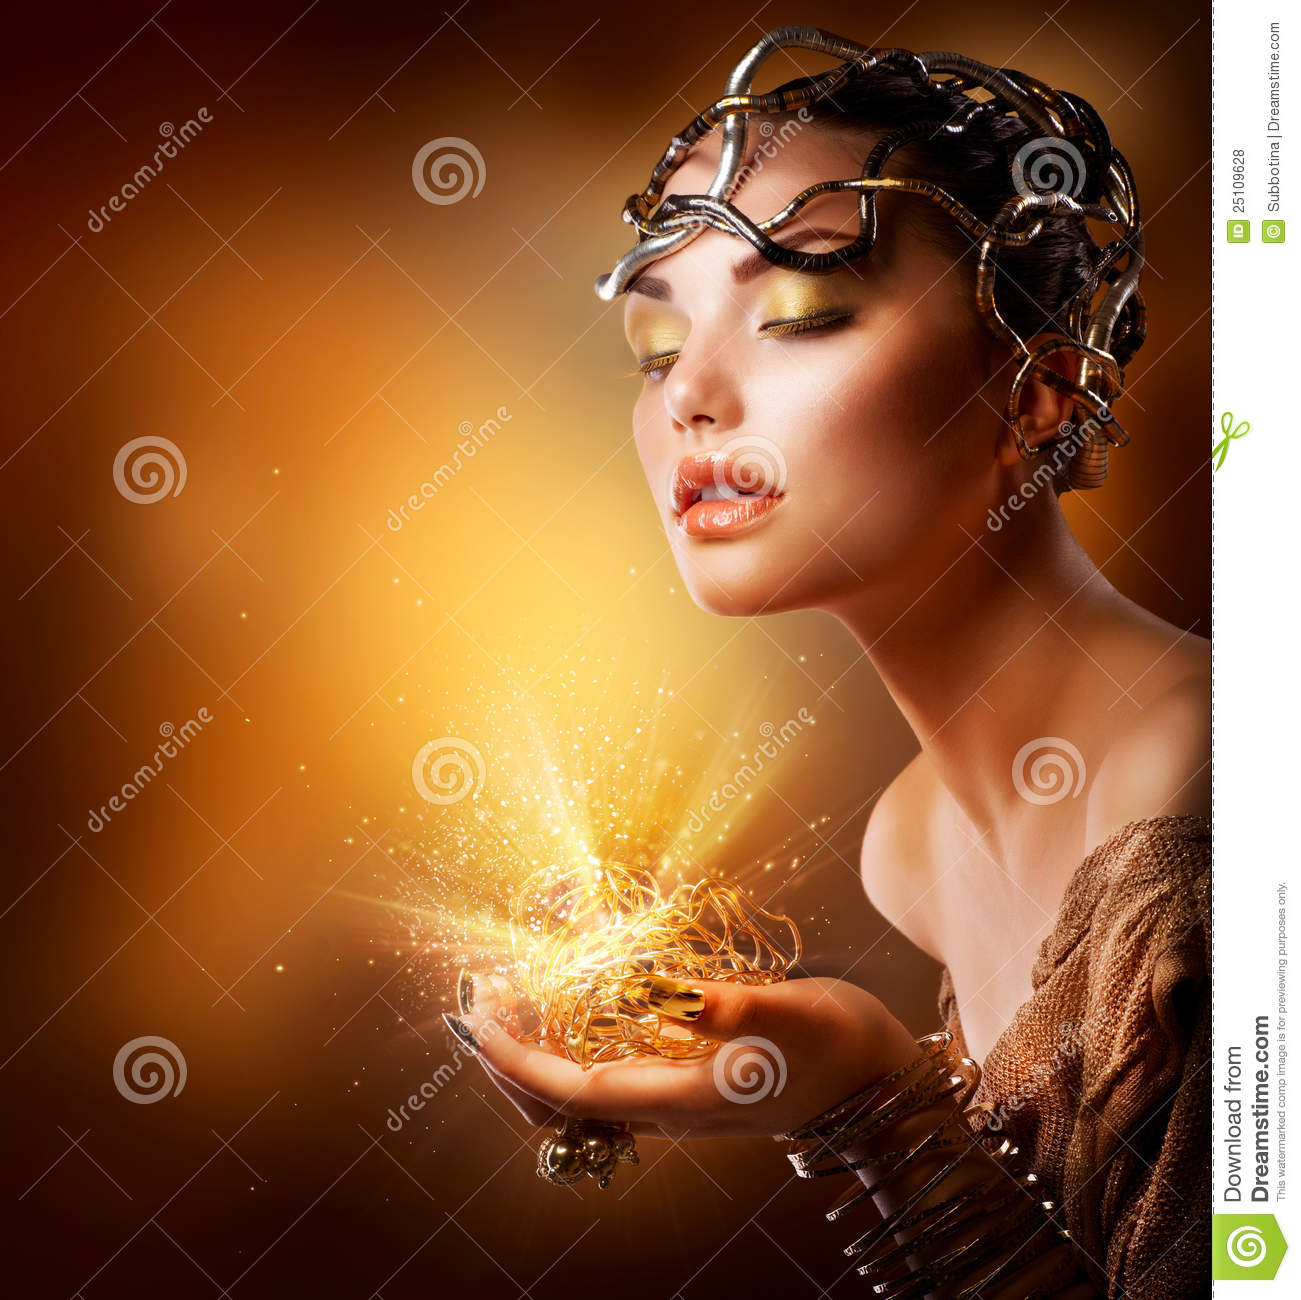 Fashion Girl Portrait Gold Makeup Stock Photo  Image of